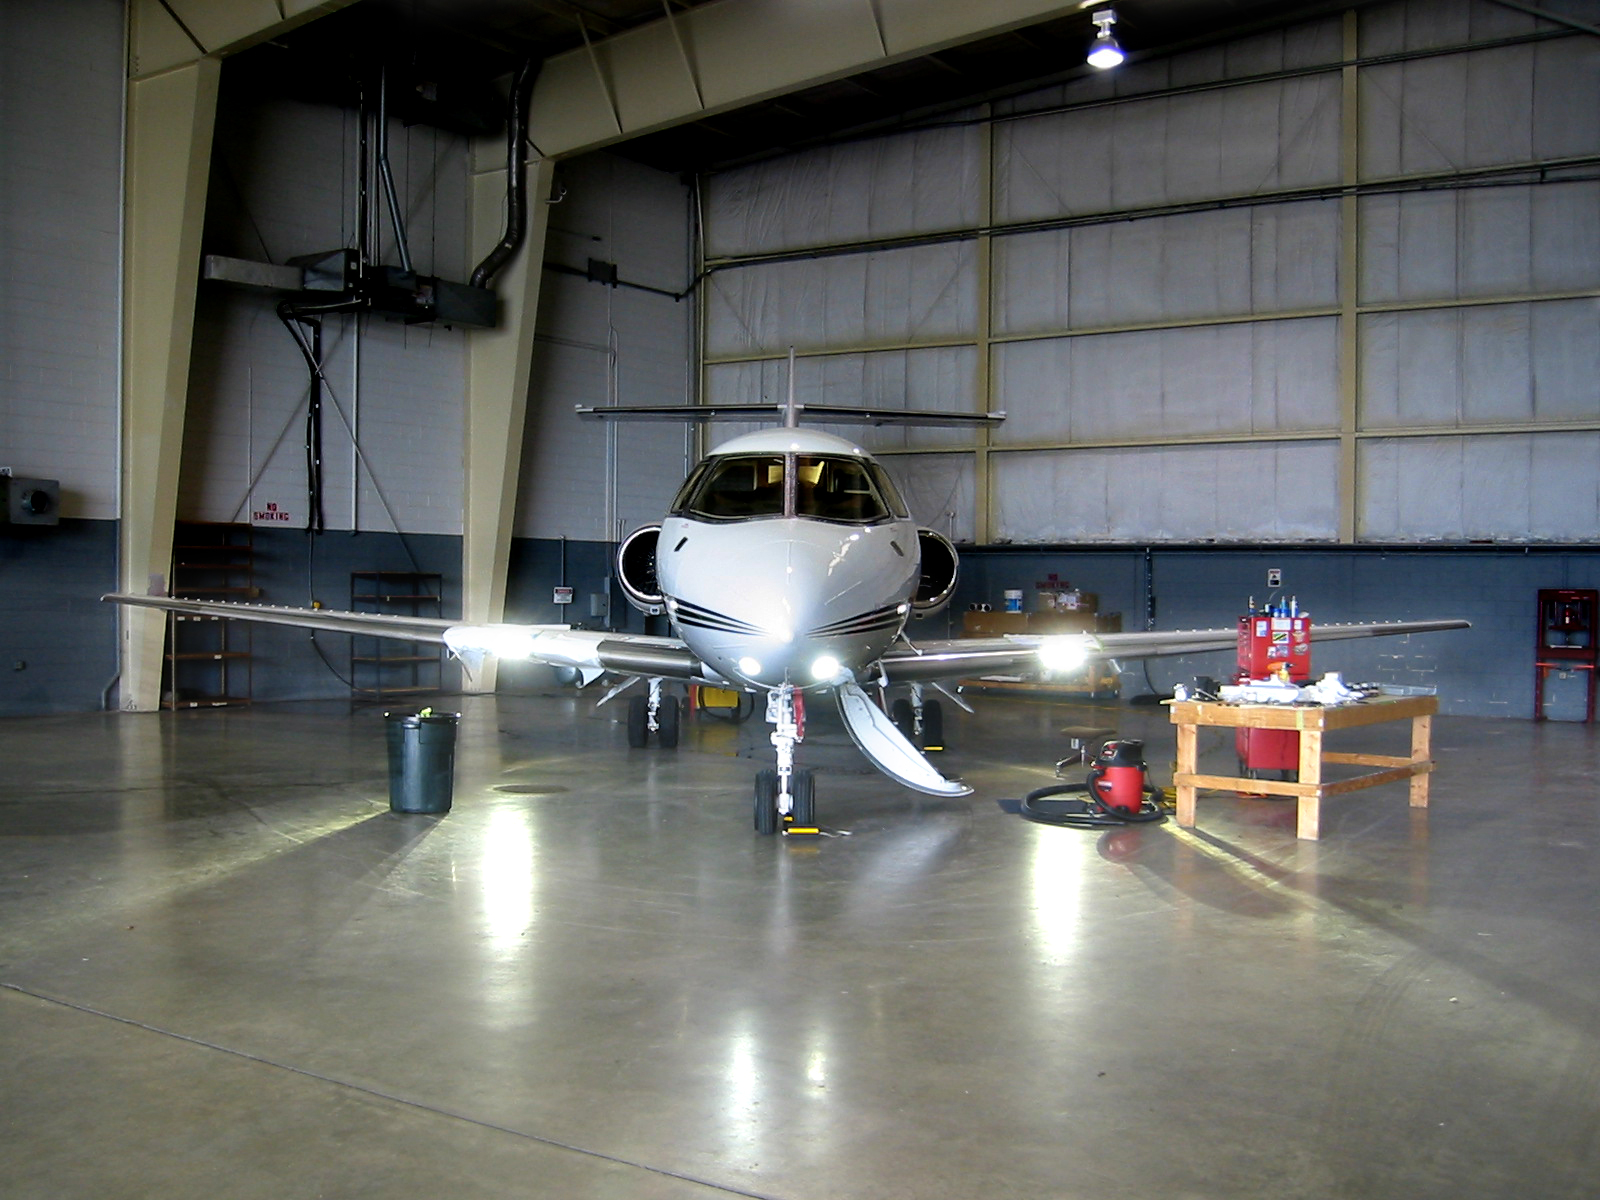 Hawker 800XP with light installed